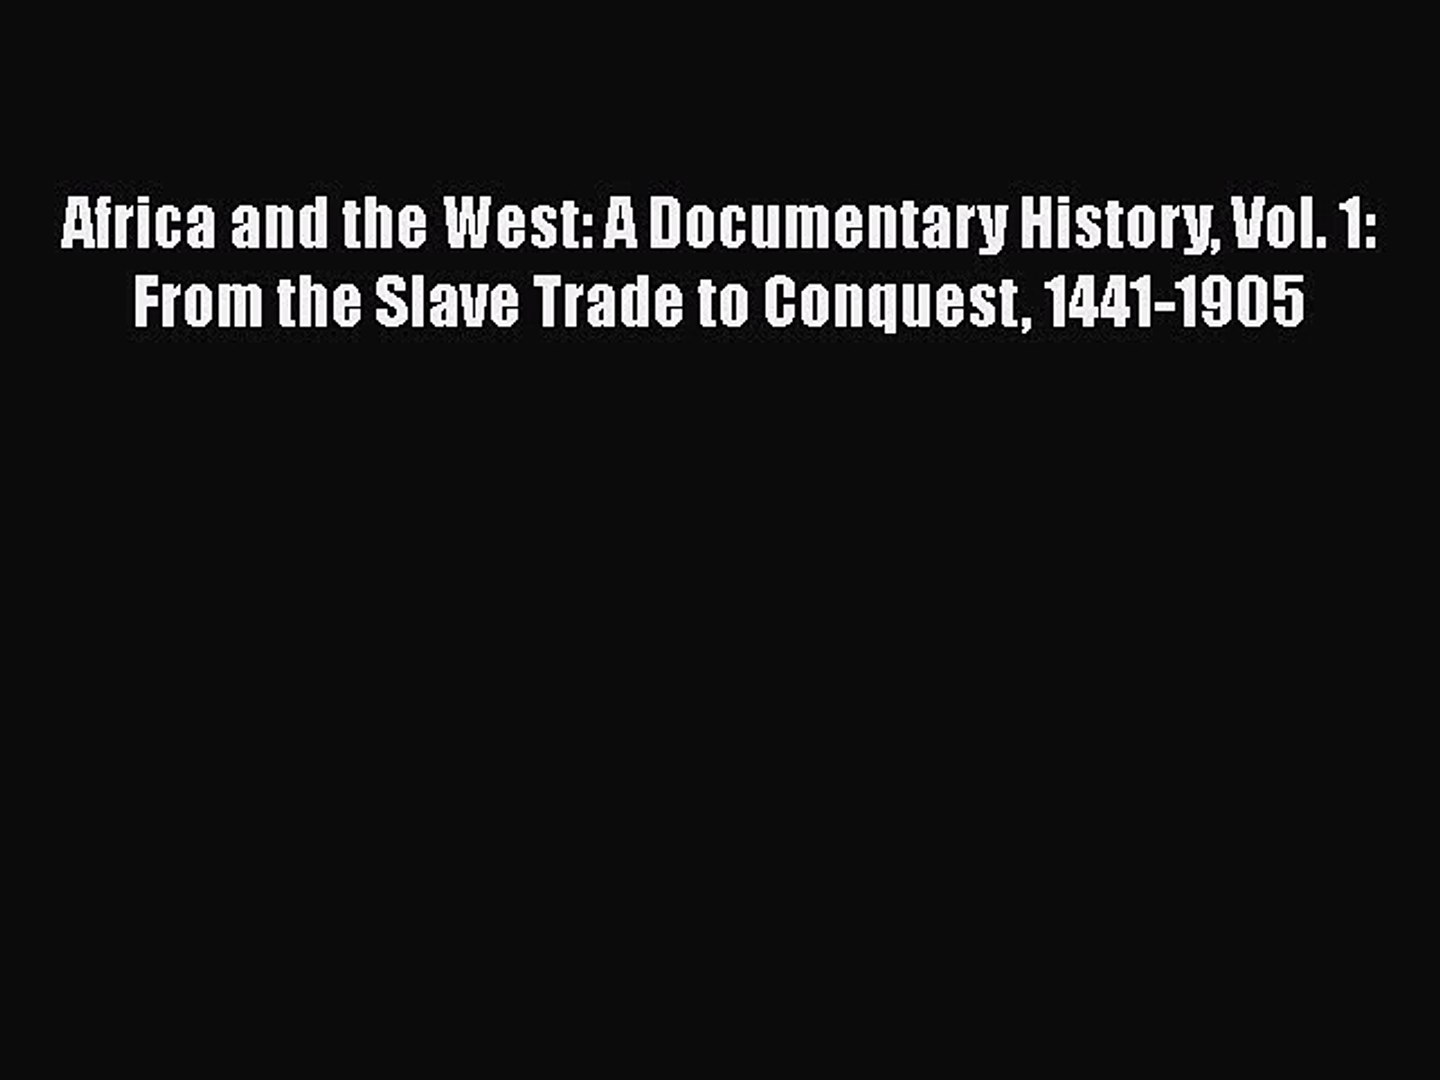 Africa and the West: A Documentary History Vol. 1: From the Slave Trade to Conquest 1441-1905